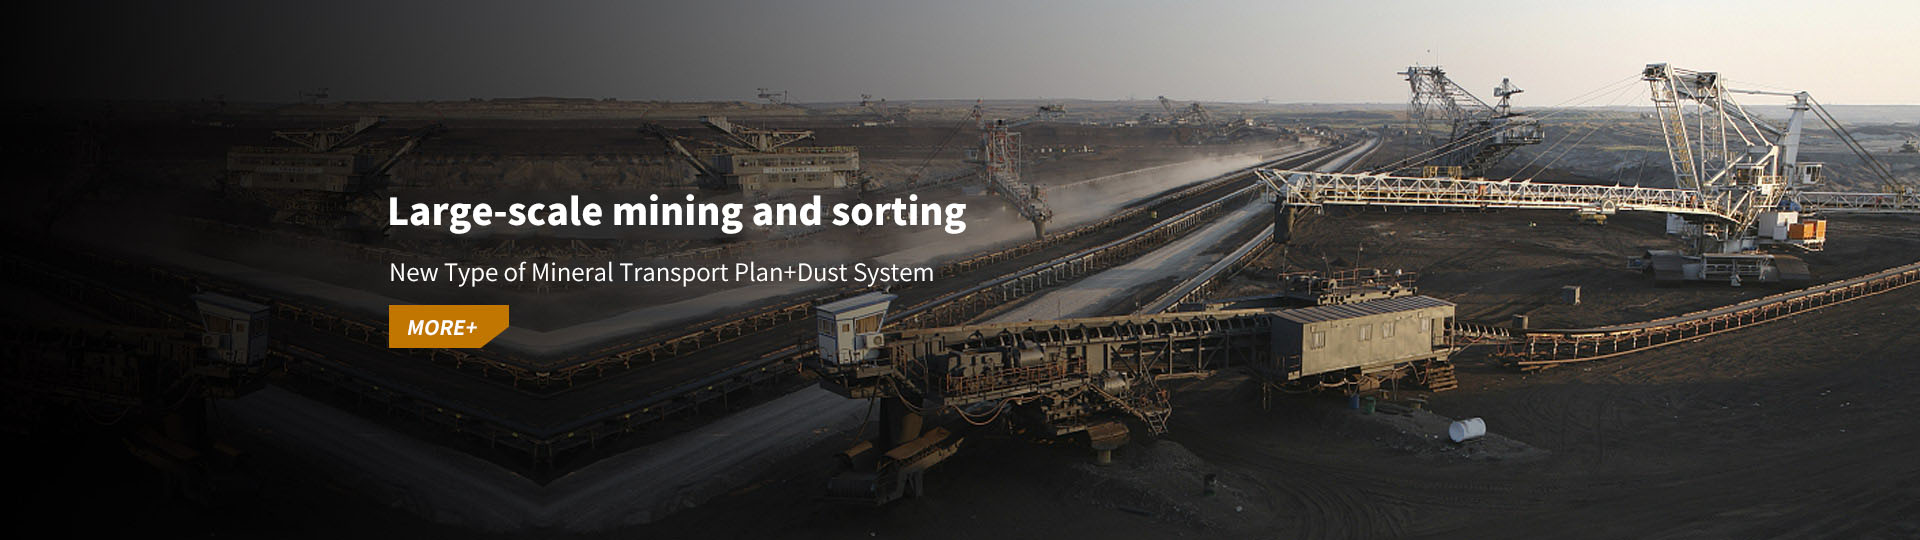 Large-scale mining and sorting - a new type of mineral transportation plan + dust system